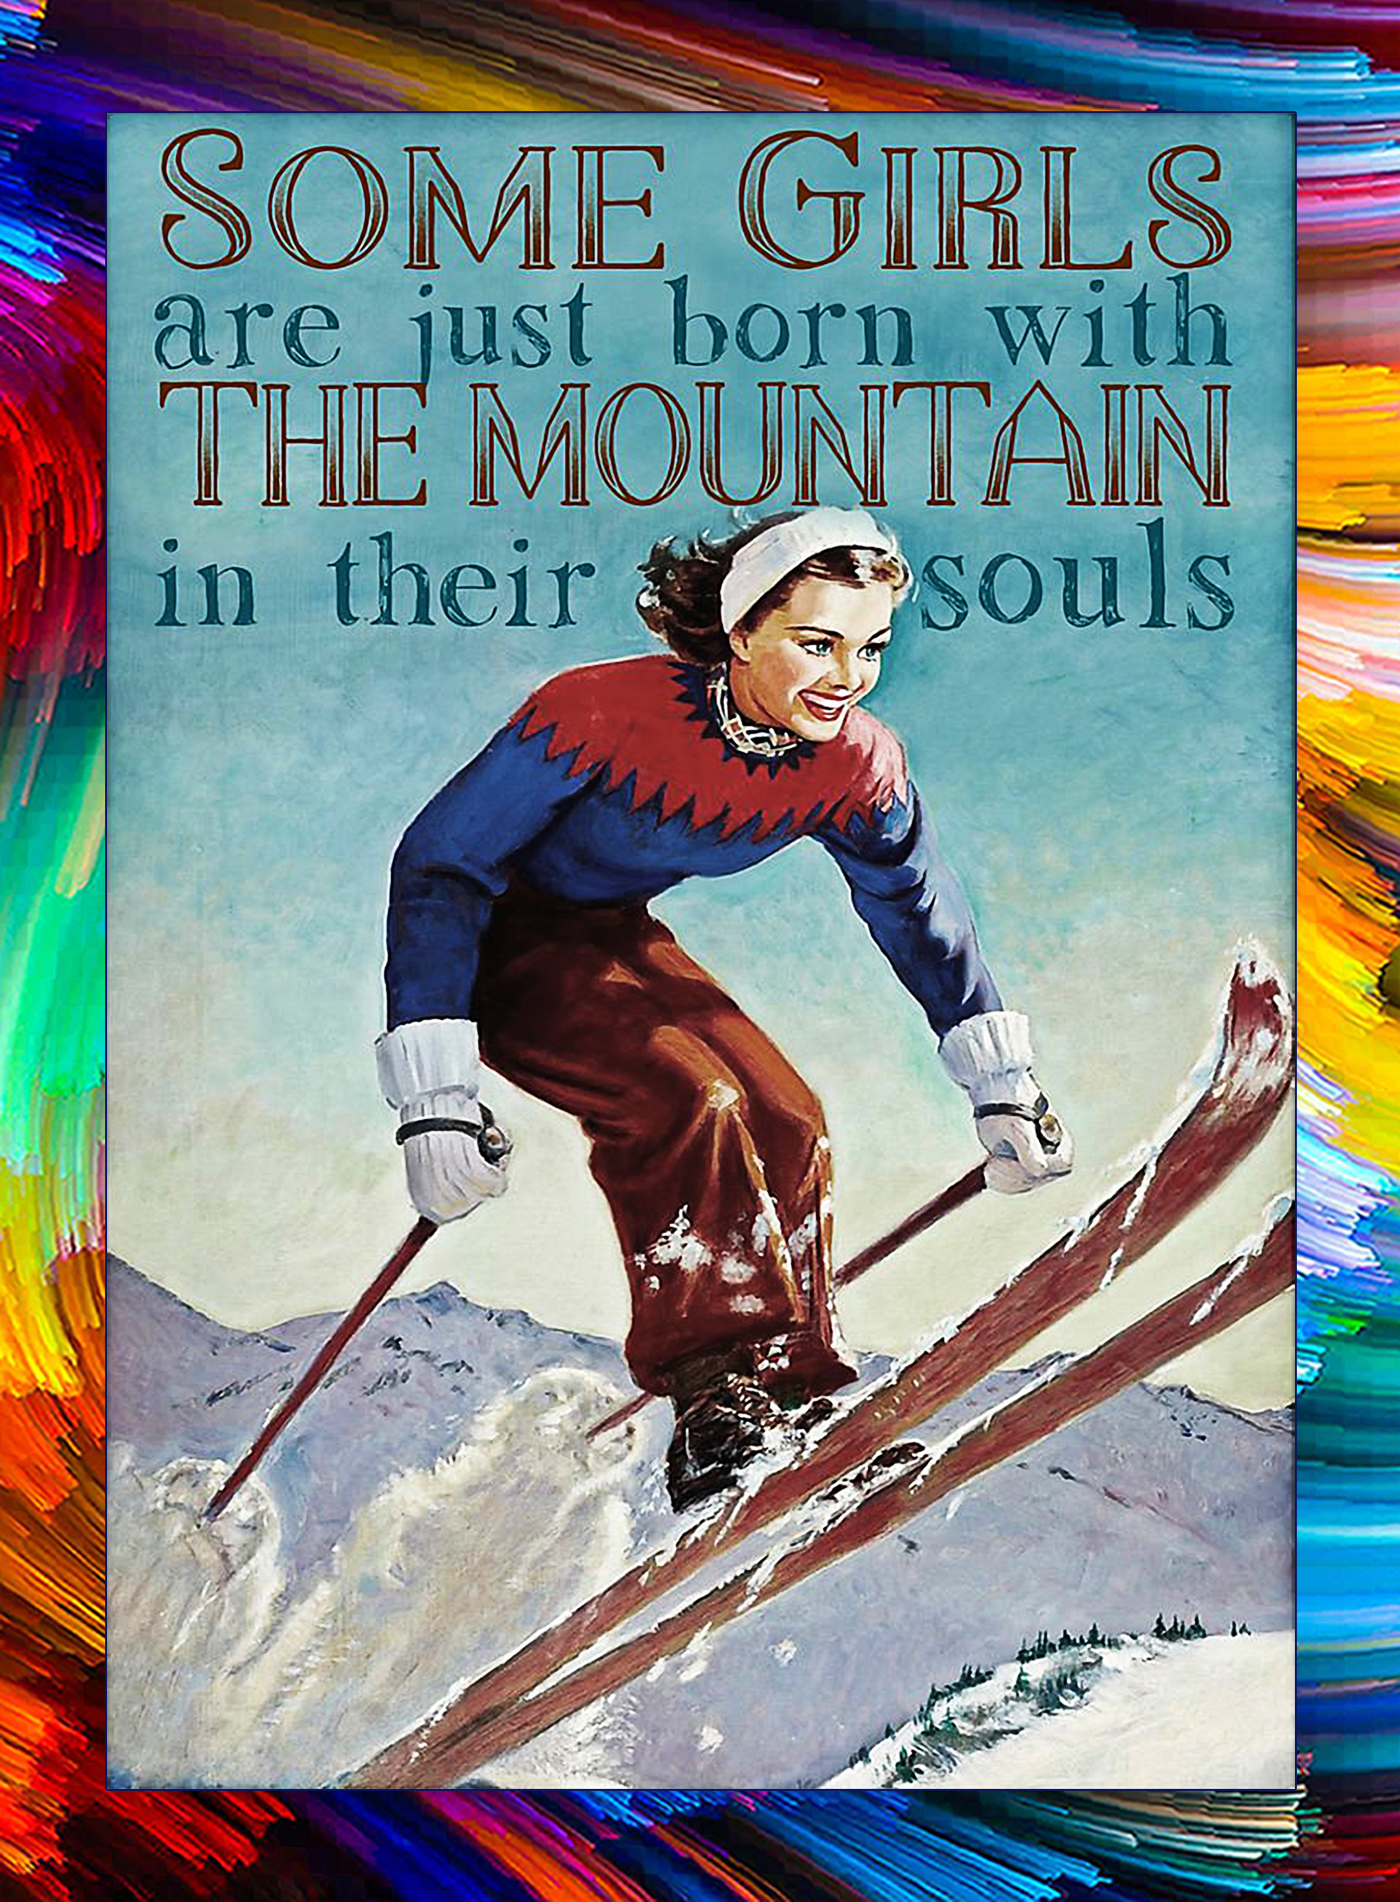 Skiing some girls are just born with the mountain in their souls poster - A1